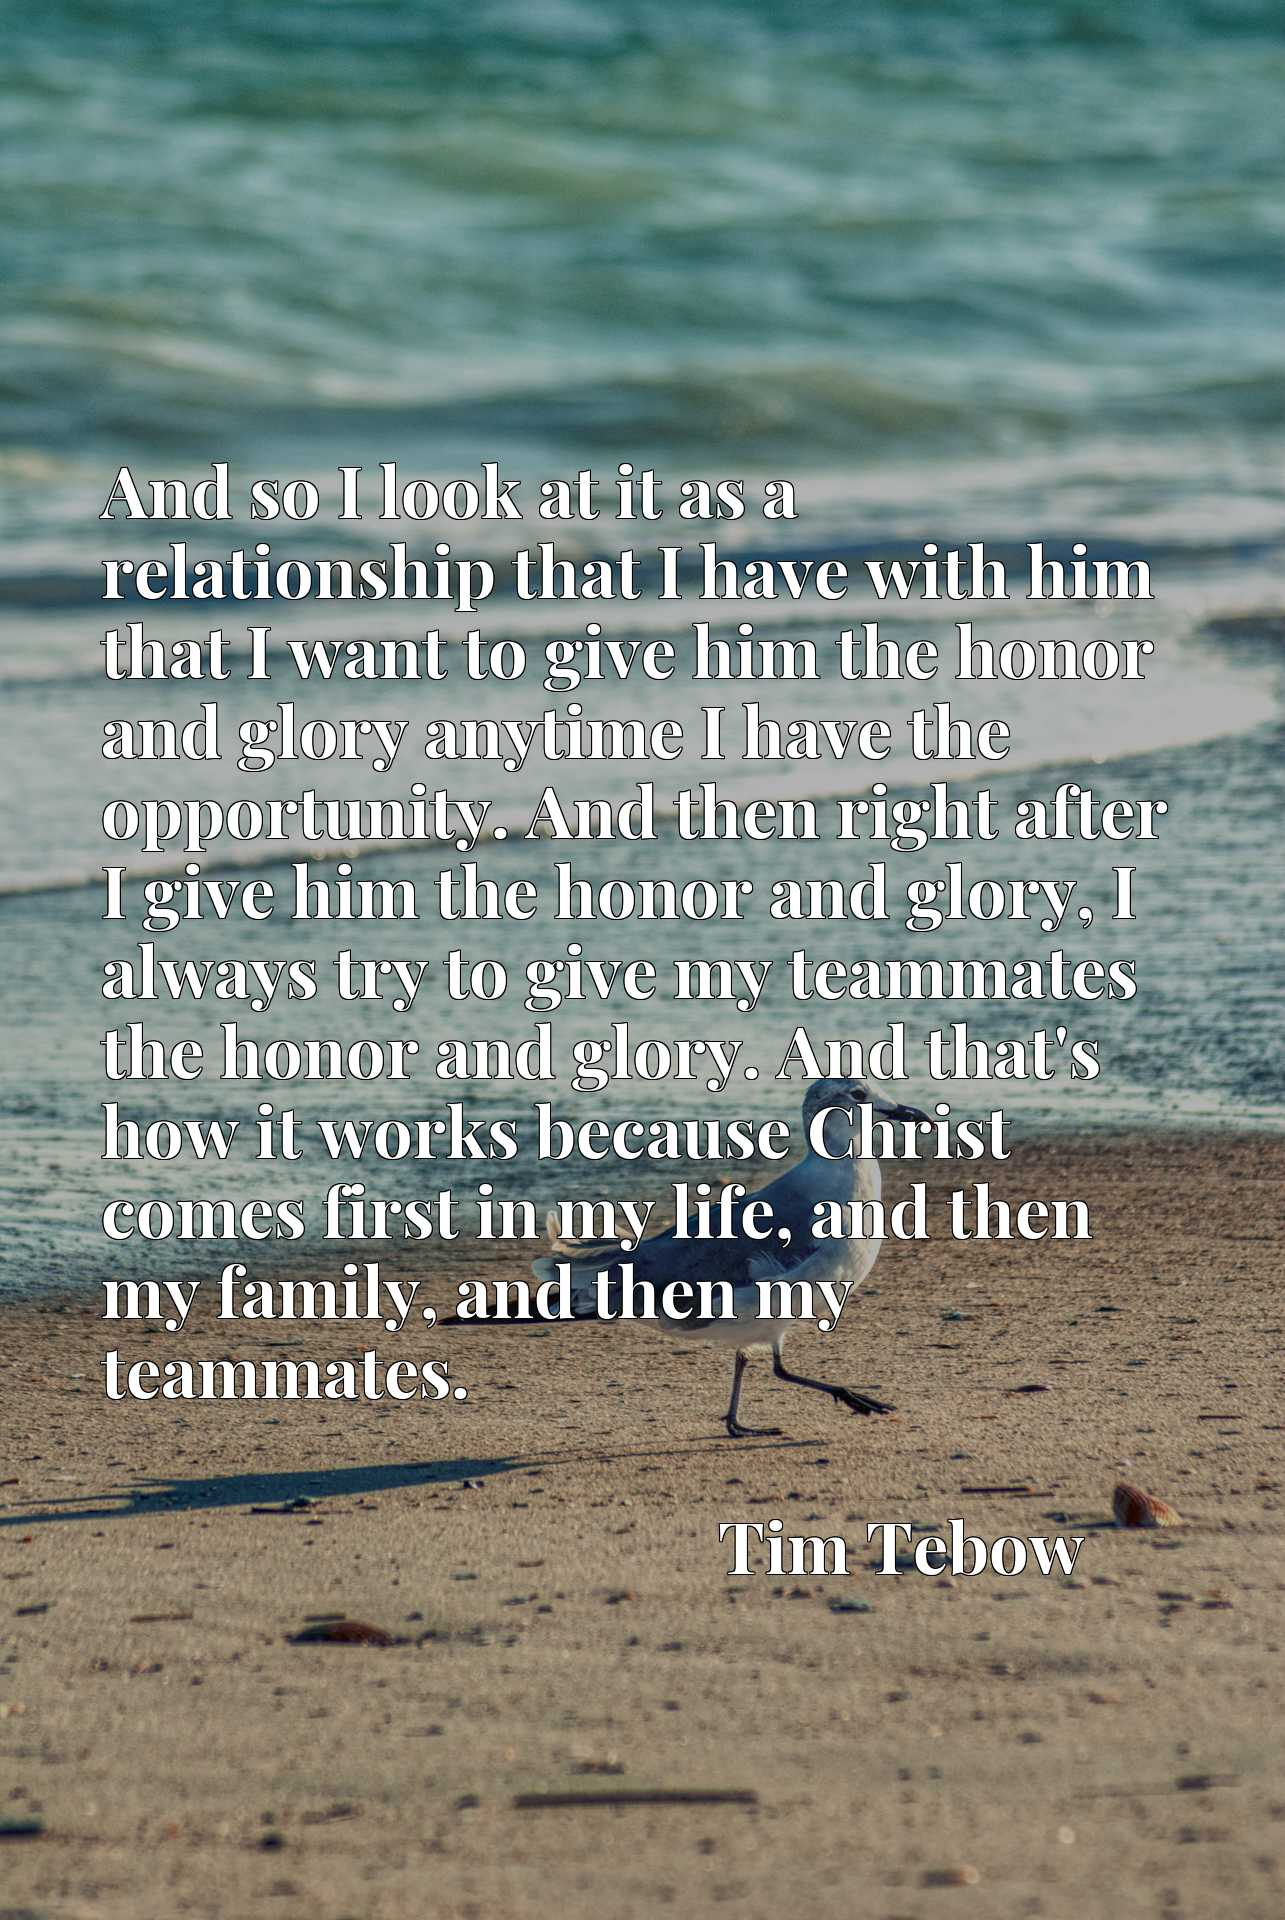 And so I look at it as a relationship that I have with him that I want to give him the honor and glory anytime I have the opportunity. And then right after I give him the honor and glory, I always try to give my teammates the honor and glory. And that's how it works because Christ comes first in my life, and then my family, and then my teammates.